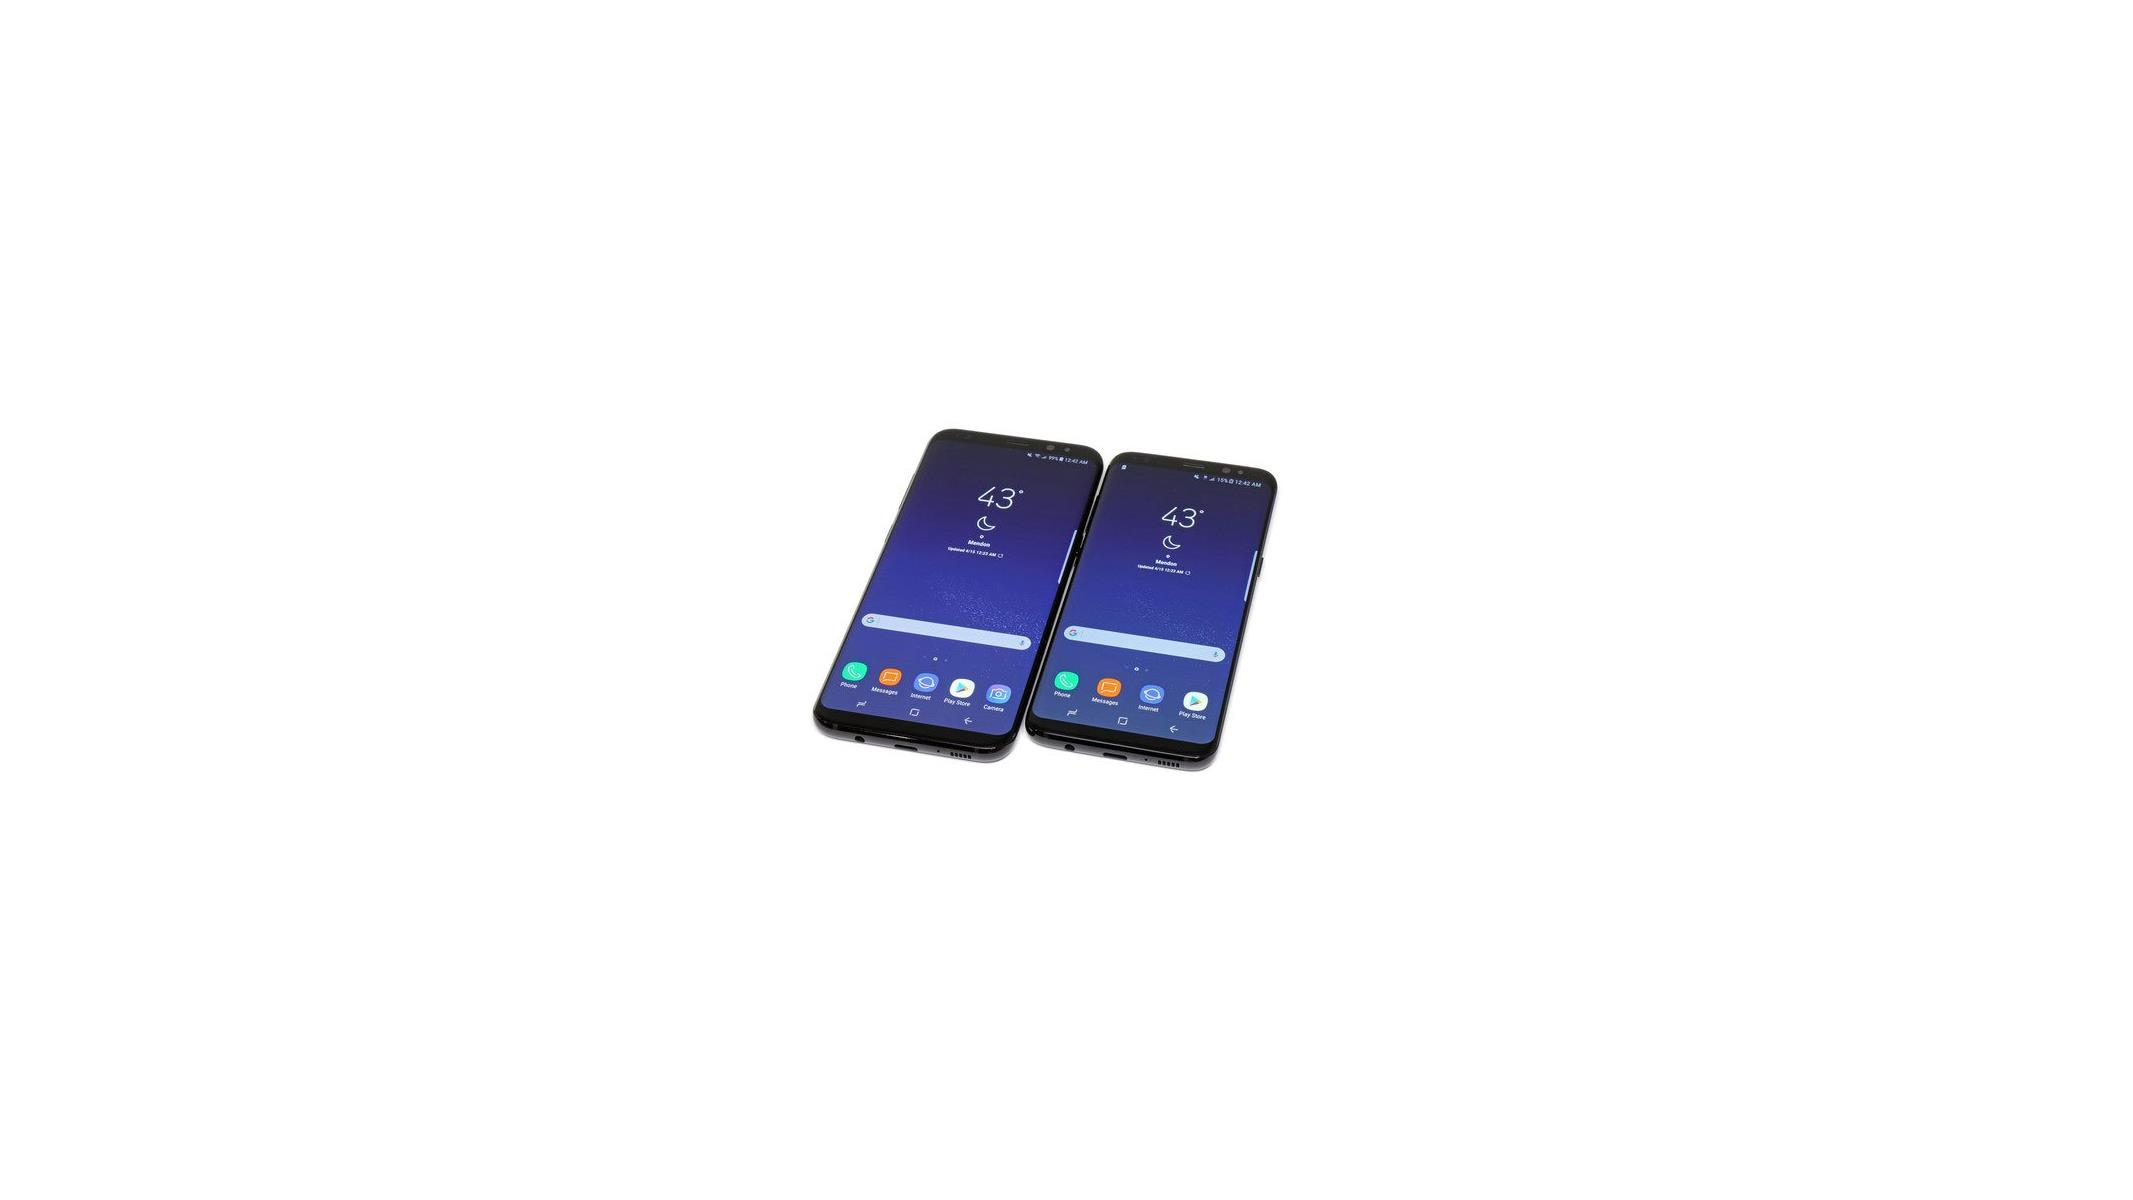 7941ca3e71f Samsung's Galaxy S8 Buy One Get One Free Offer Smokes Other Carrier Deals |  HotHardware